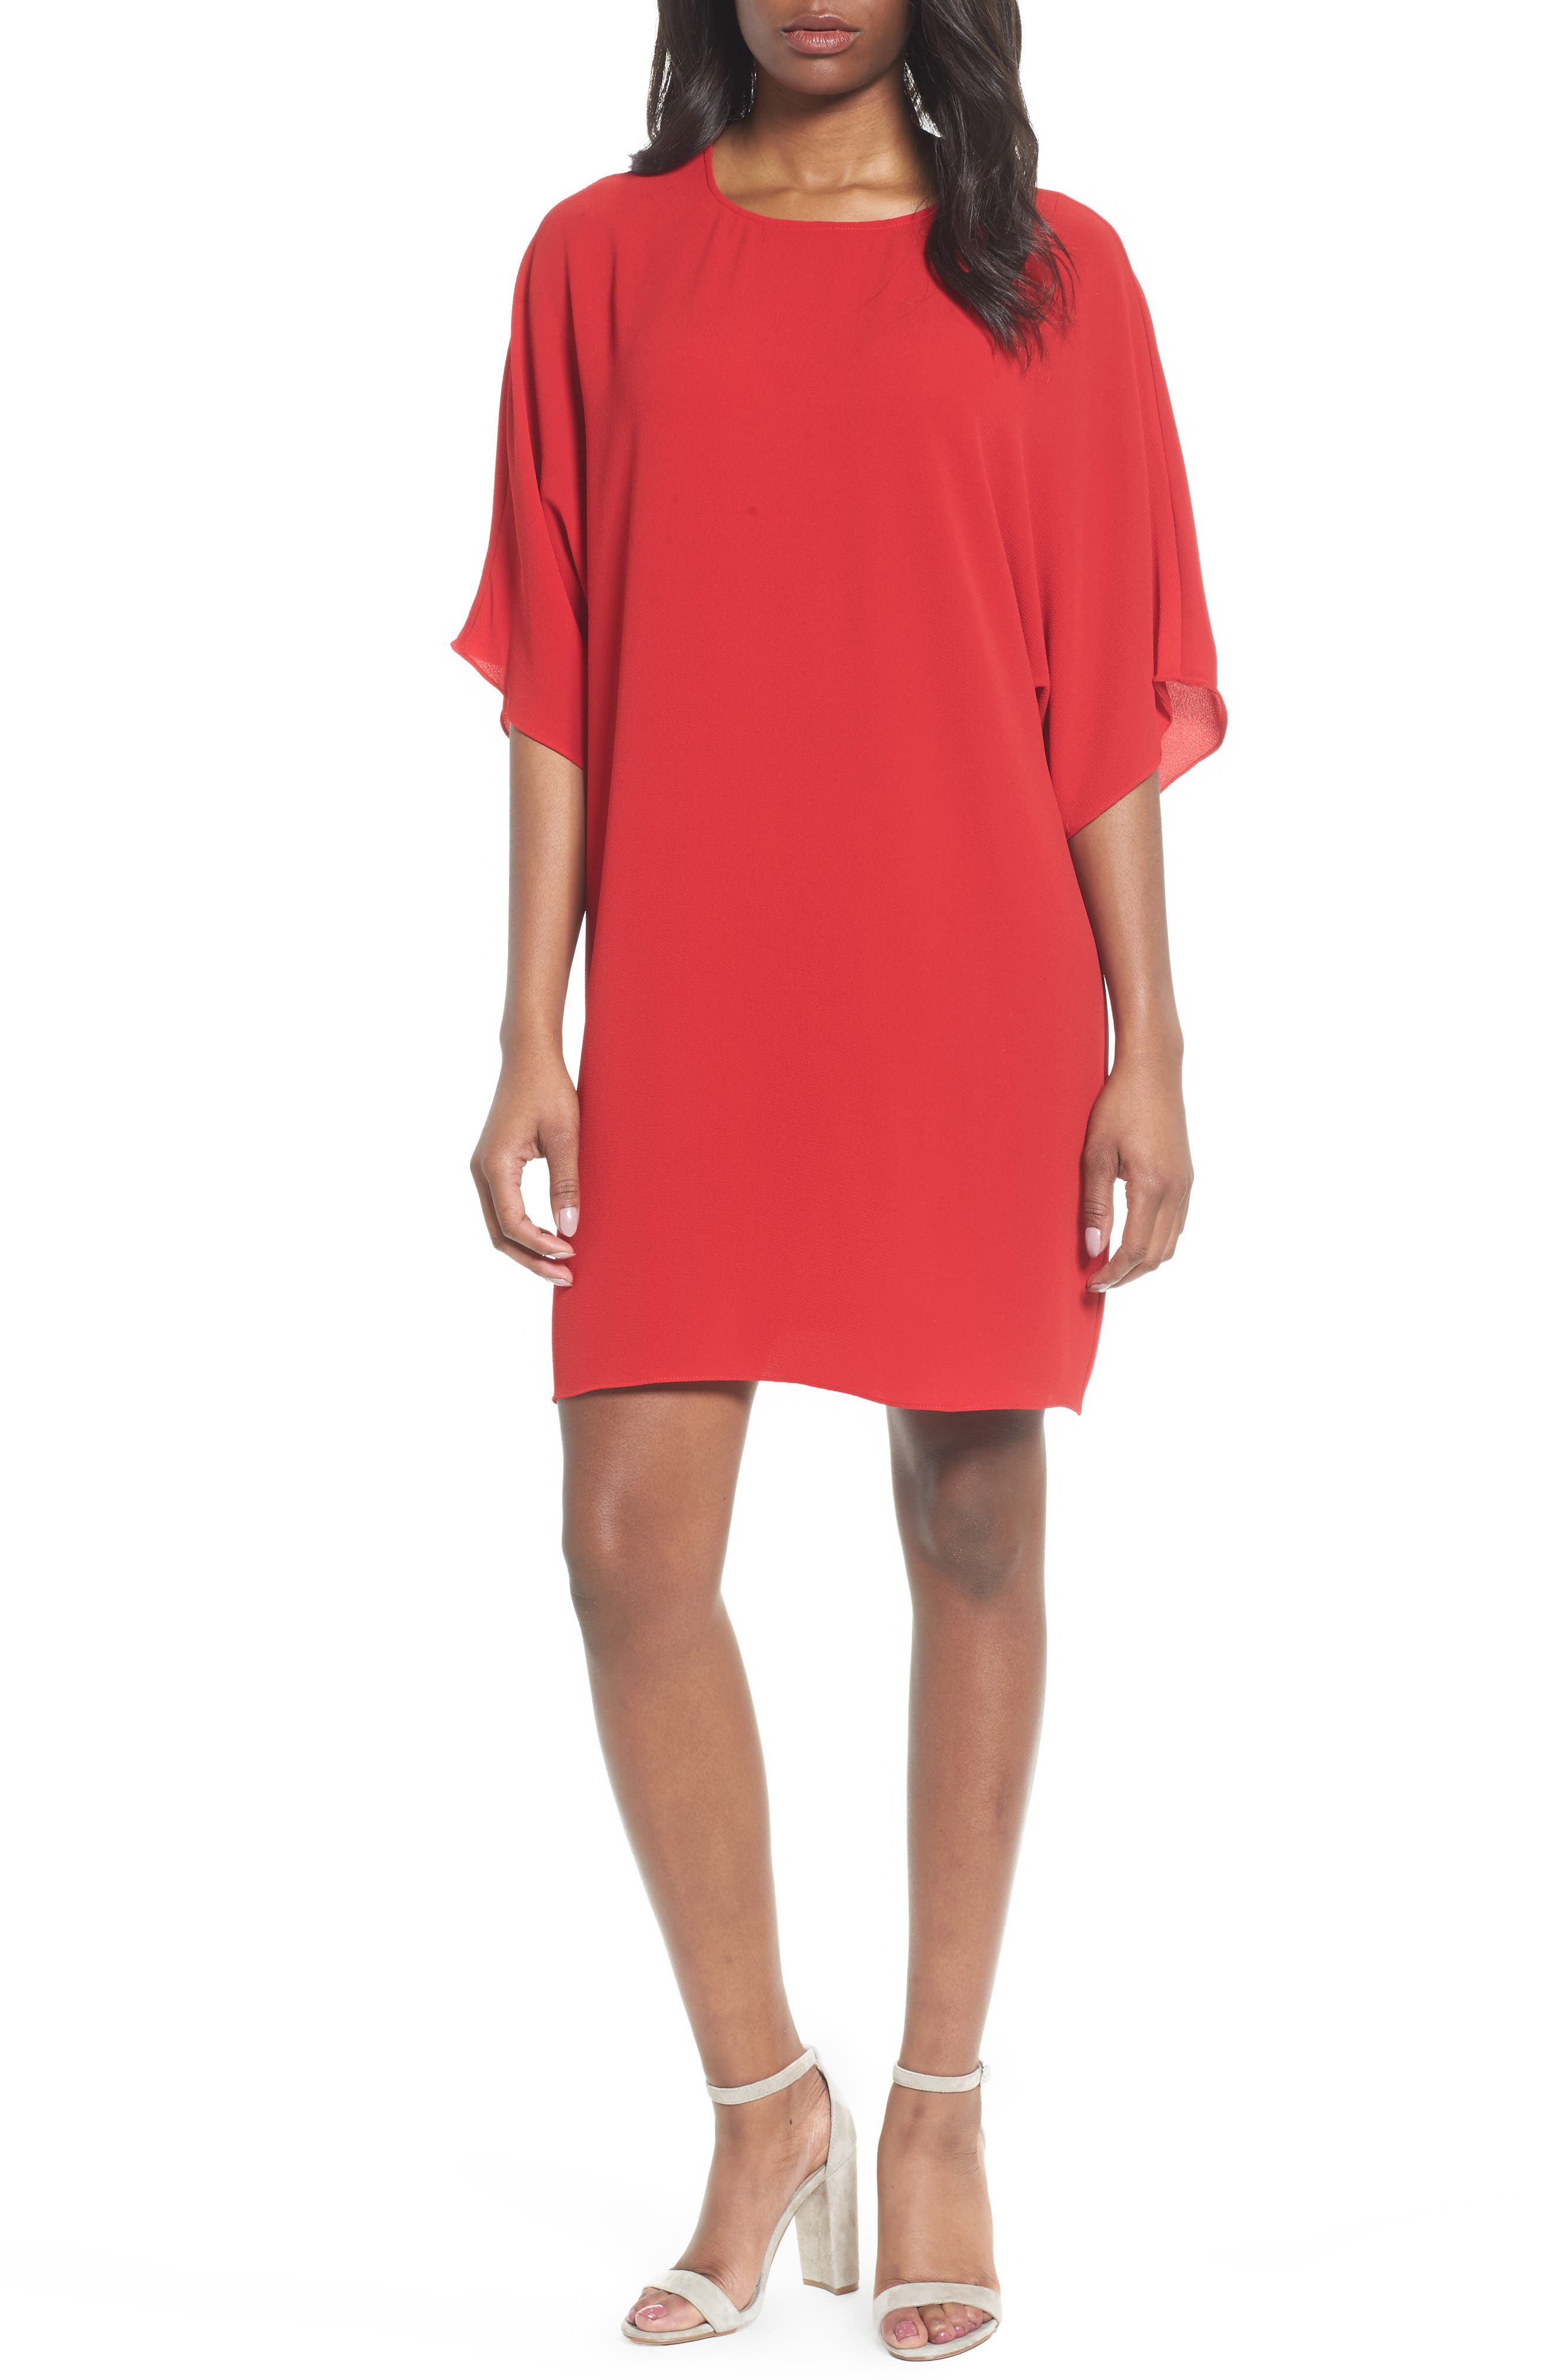 Alternate Image 1 Selected - Vince Camuto Dolman Sleeve Dress